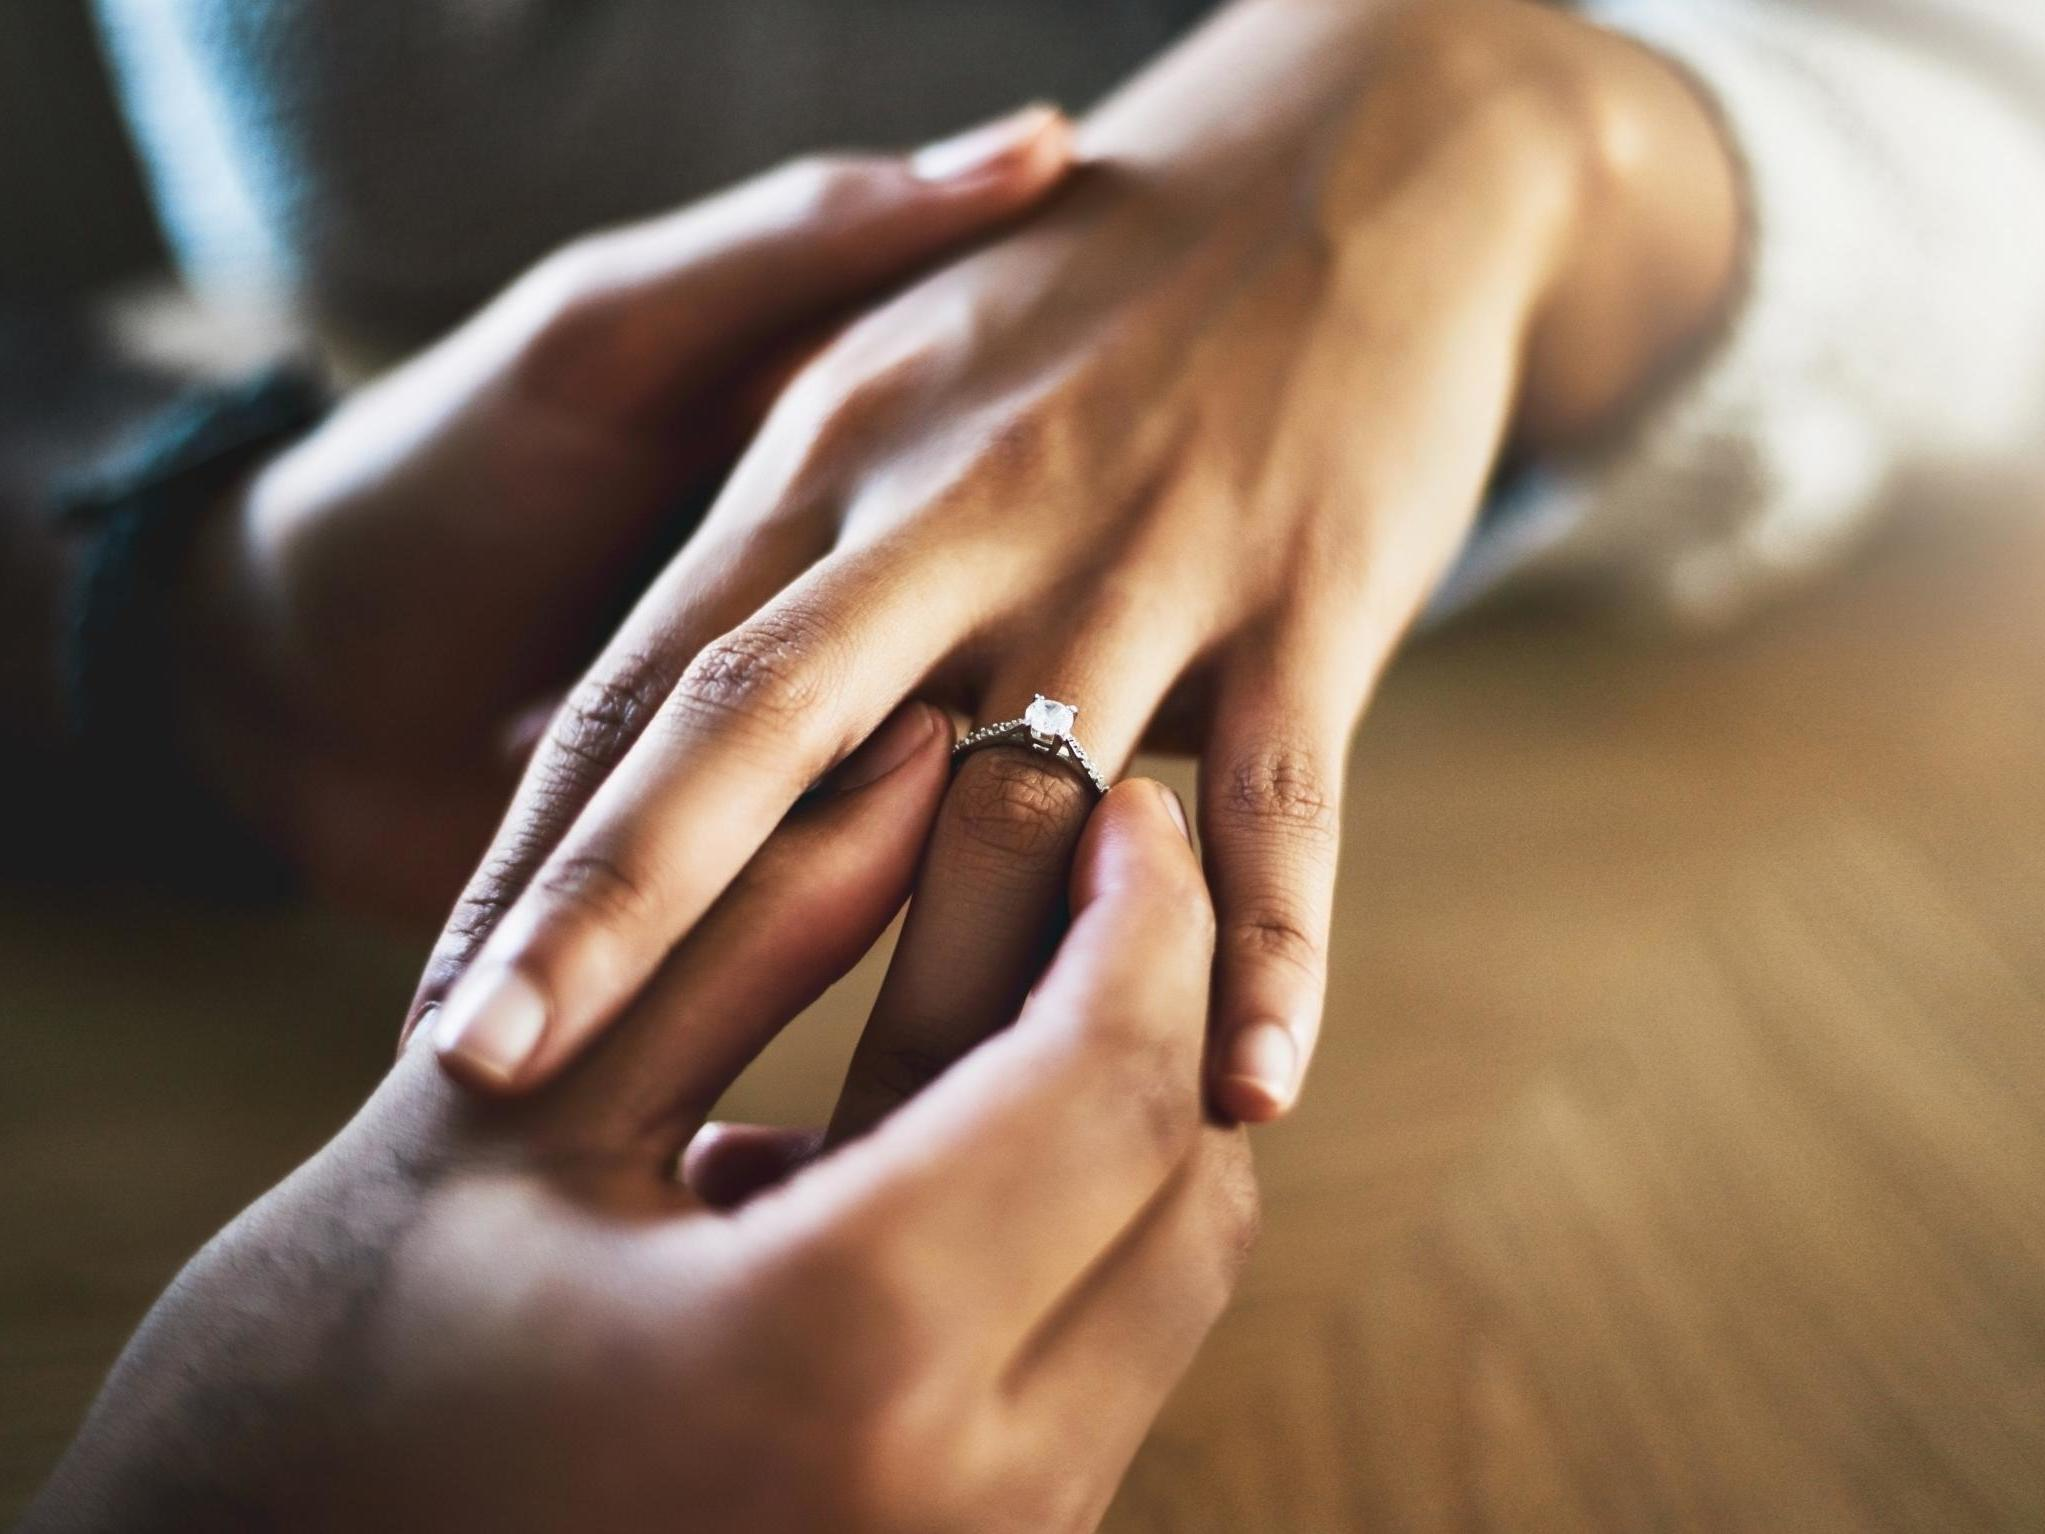 Only heterosexual married people should have sex, Church of England …